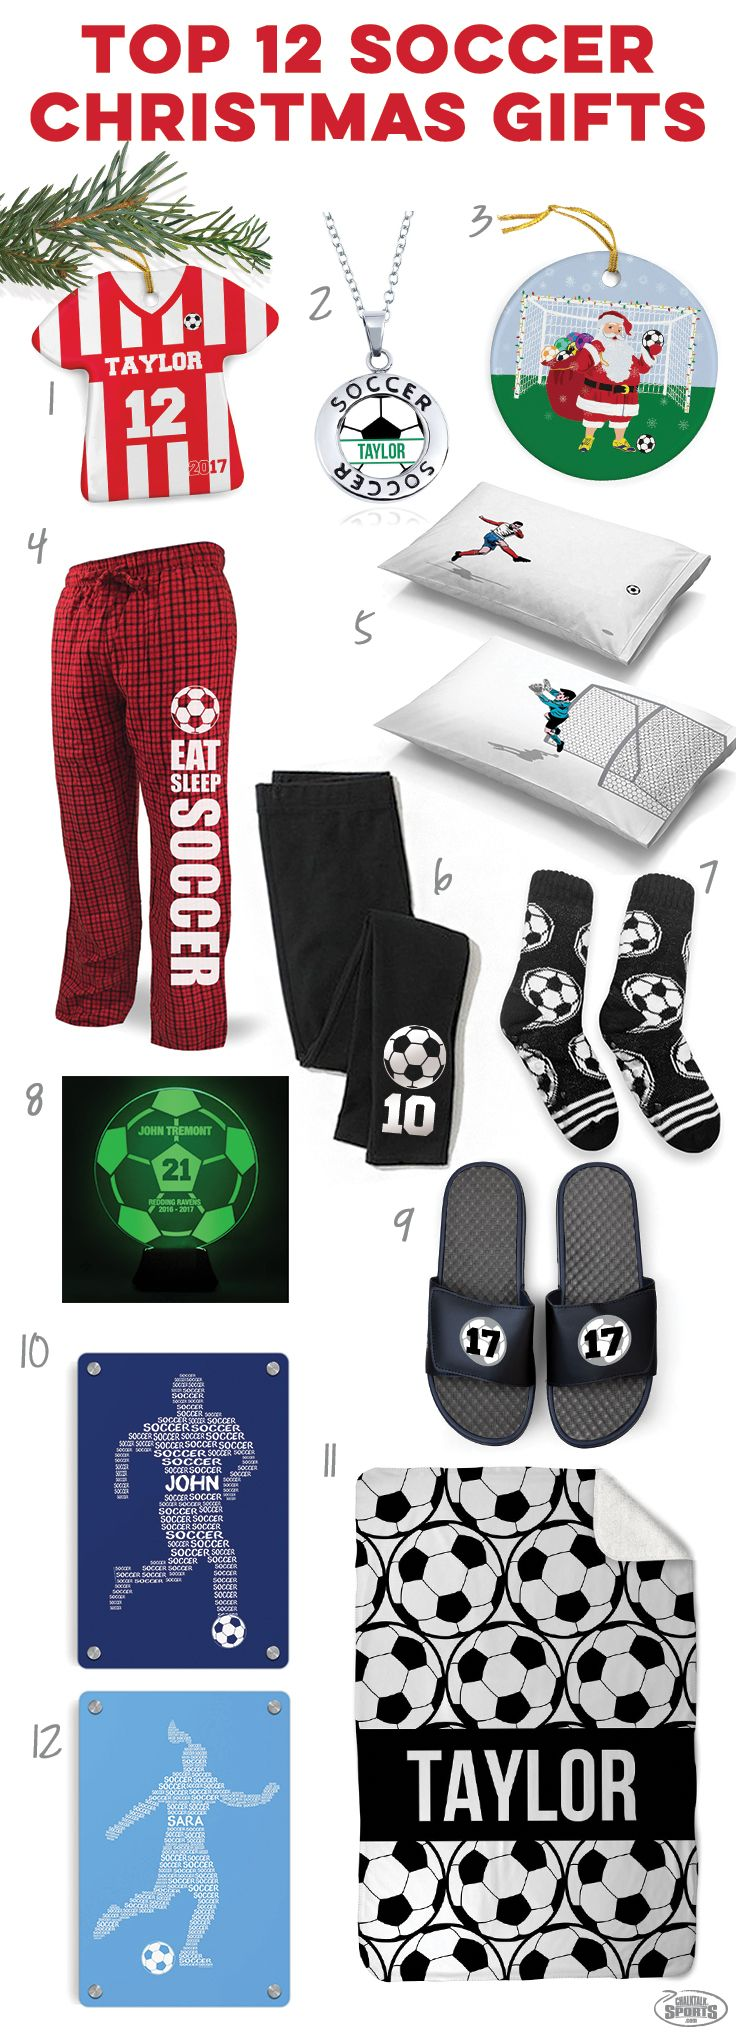 Check out these great holiday soccer gift ideas! Click to see more details on our top 12 soccer player gift ideas. Unique soccer Christmas gifts you c…